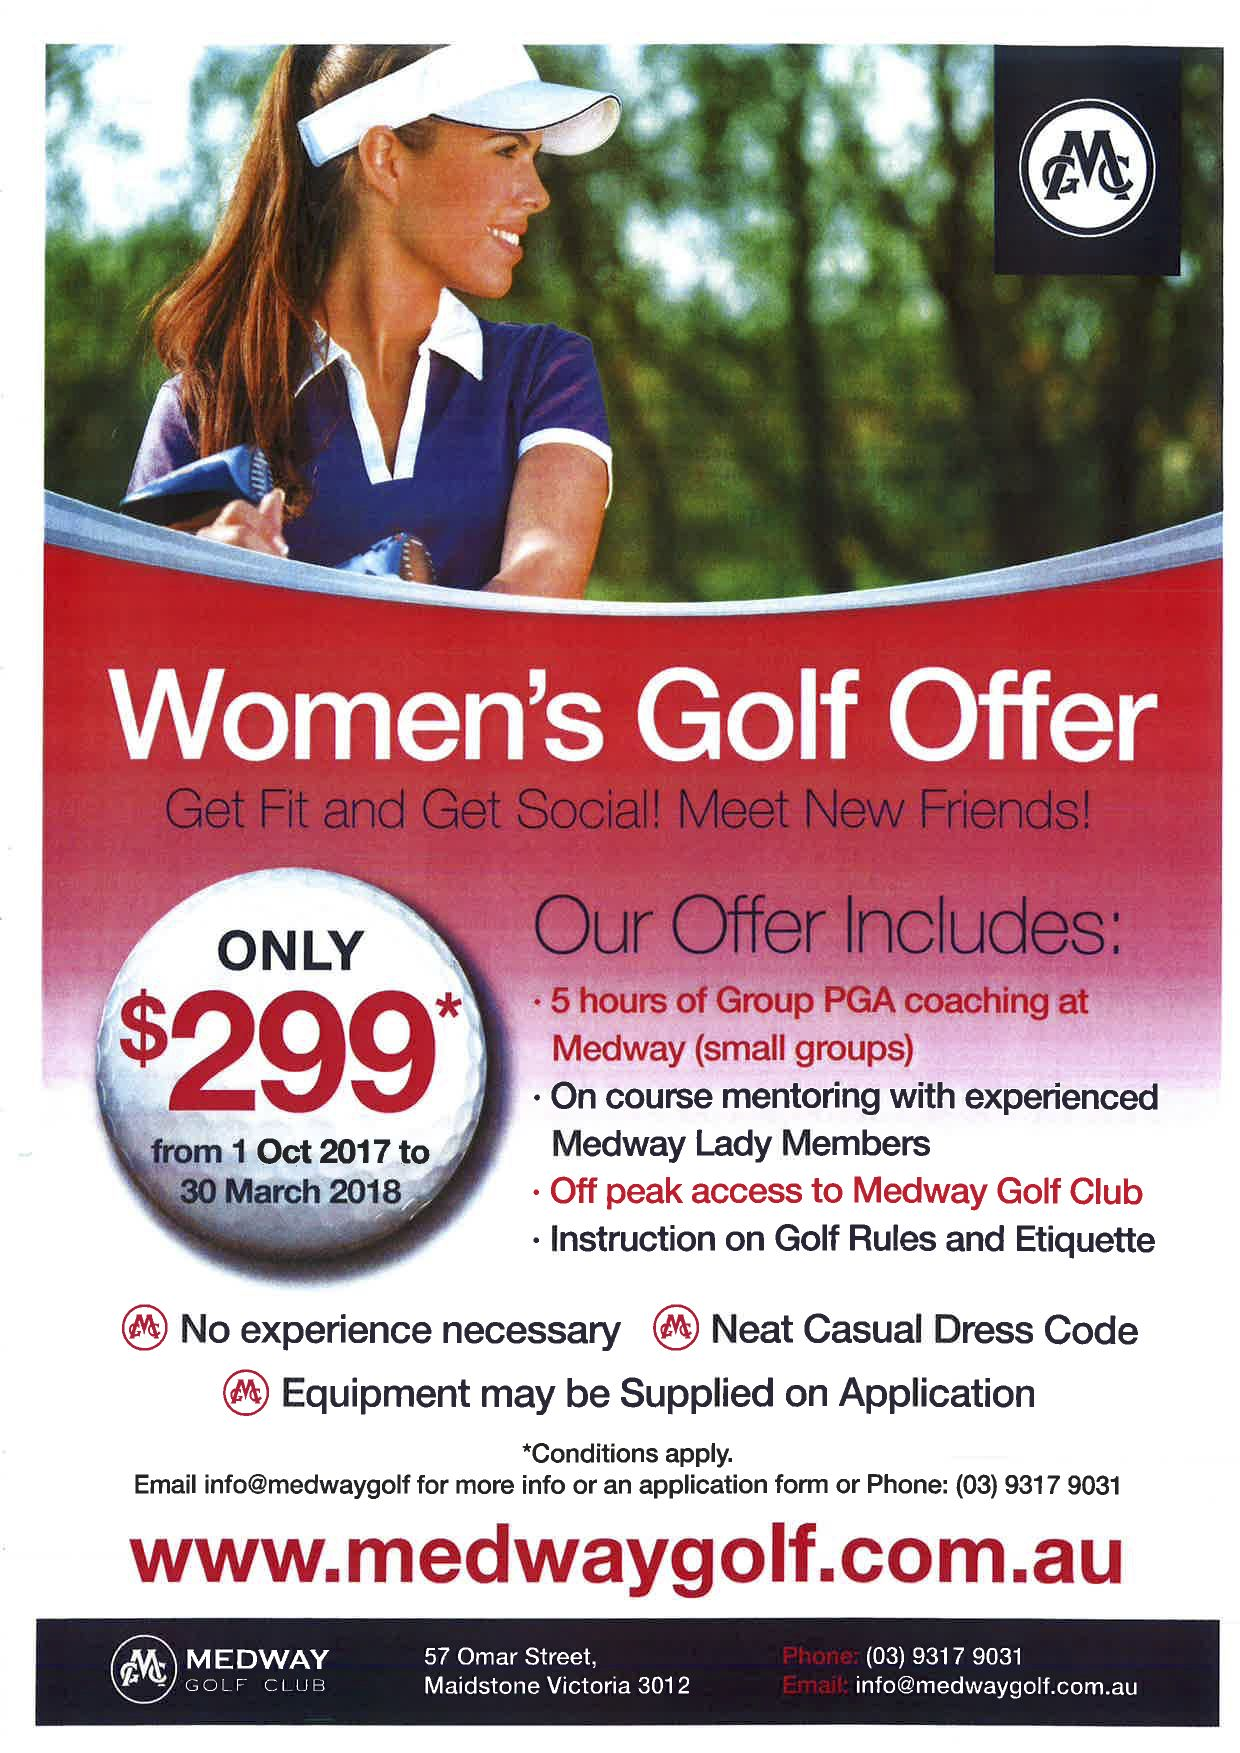 Women's Golf at Medway